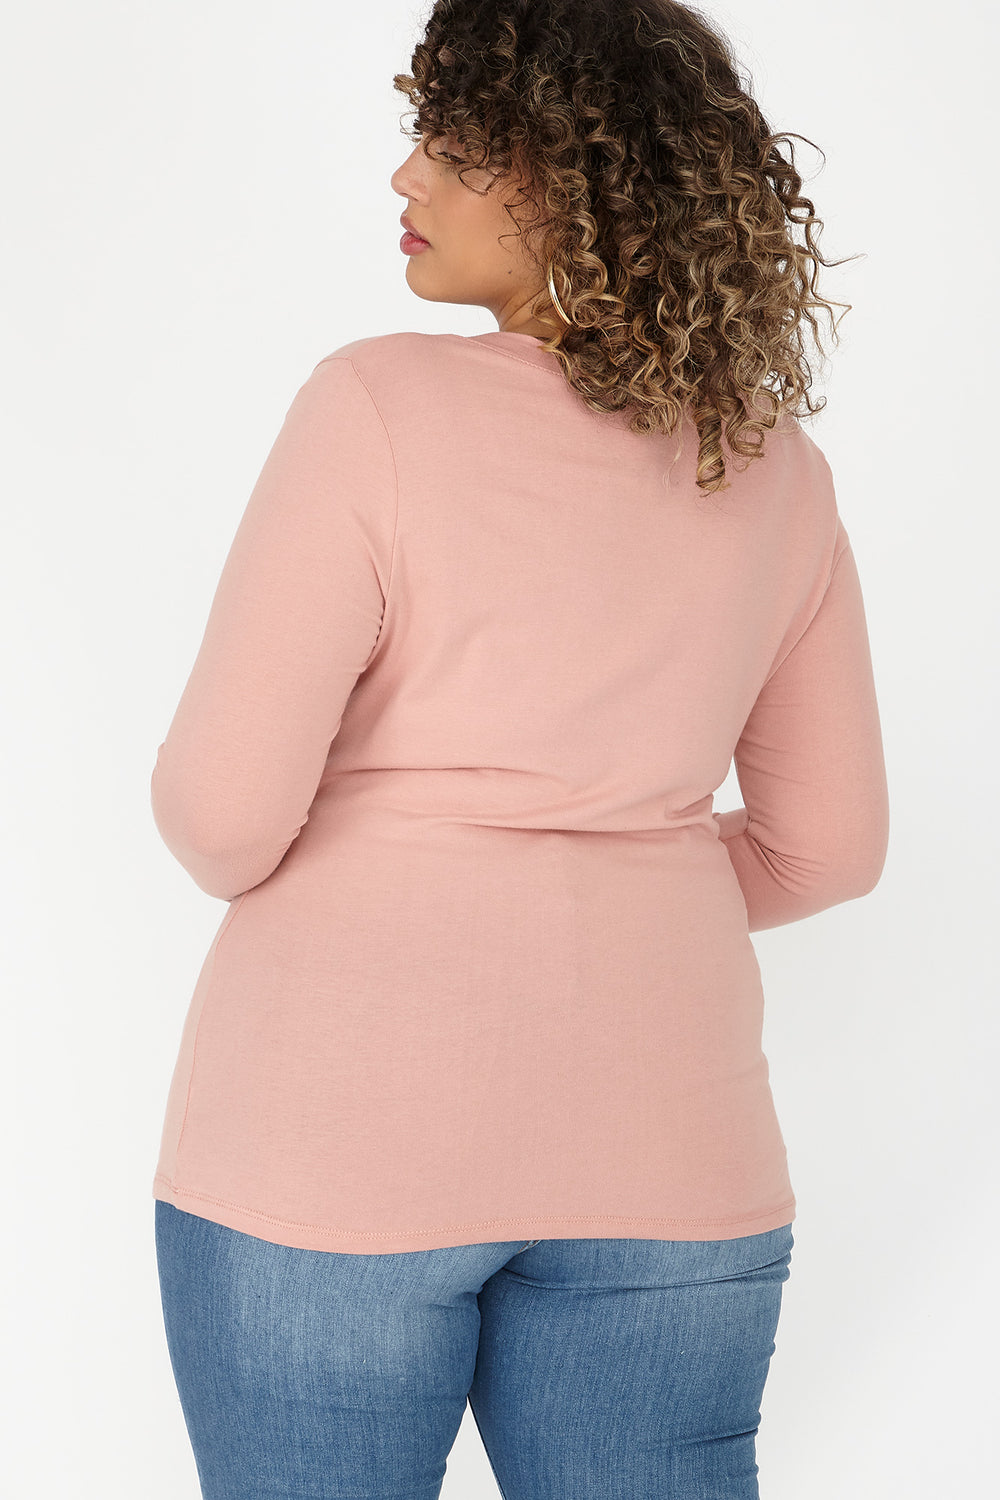 Plus Size V-Neck Long Sleeve Top Mauve